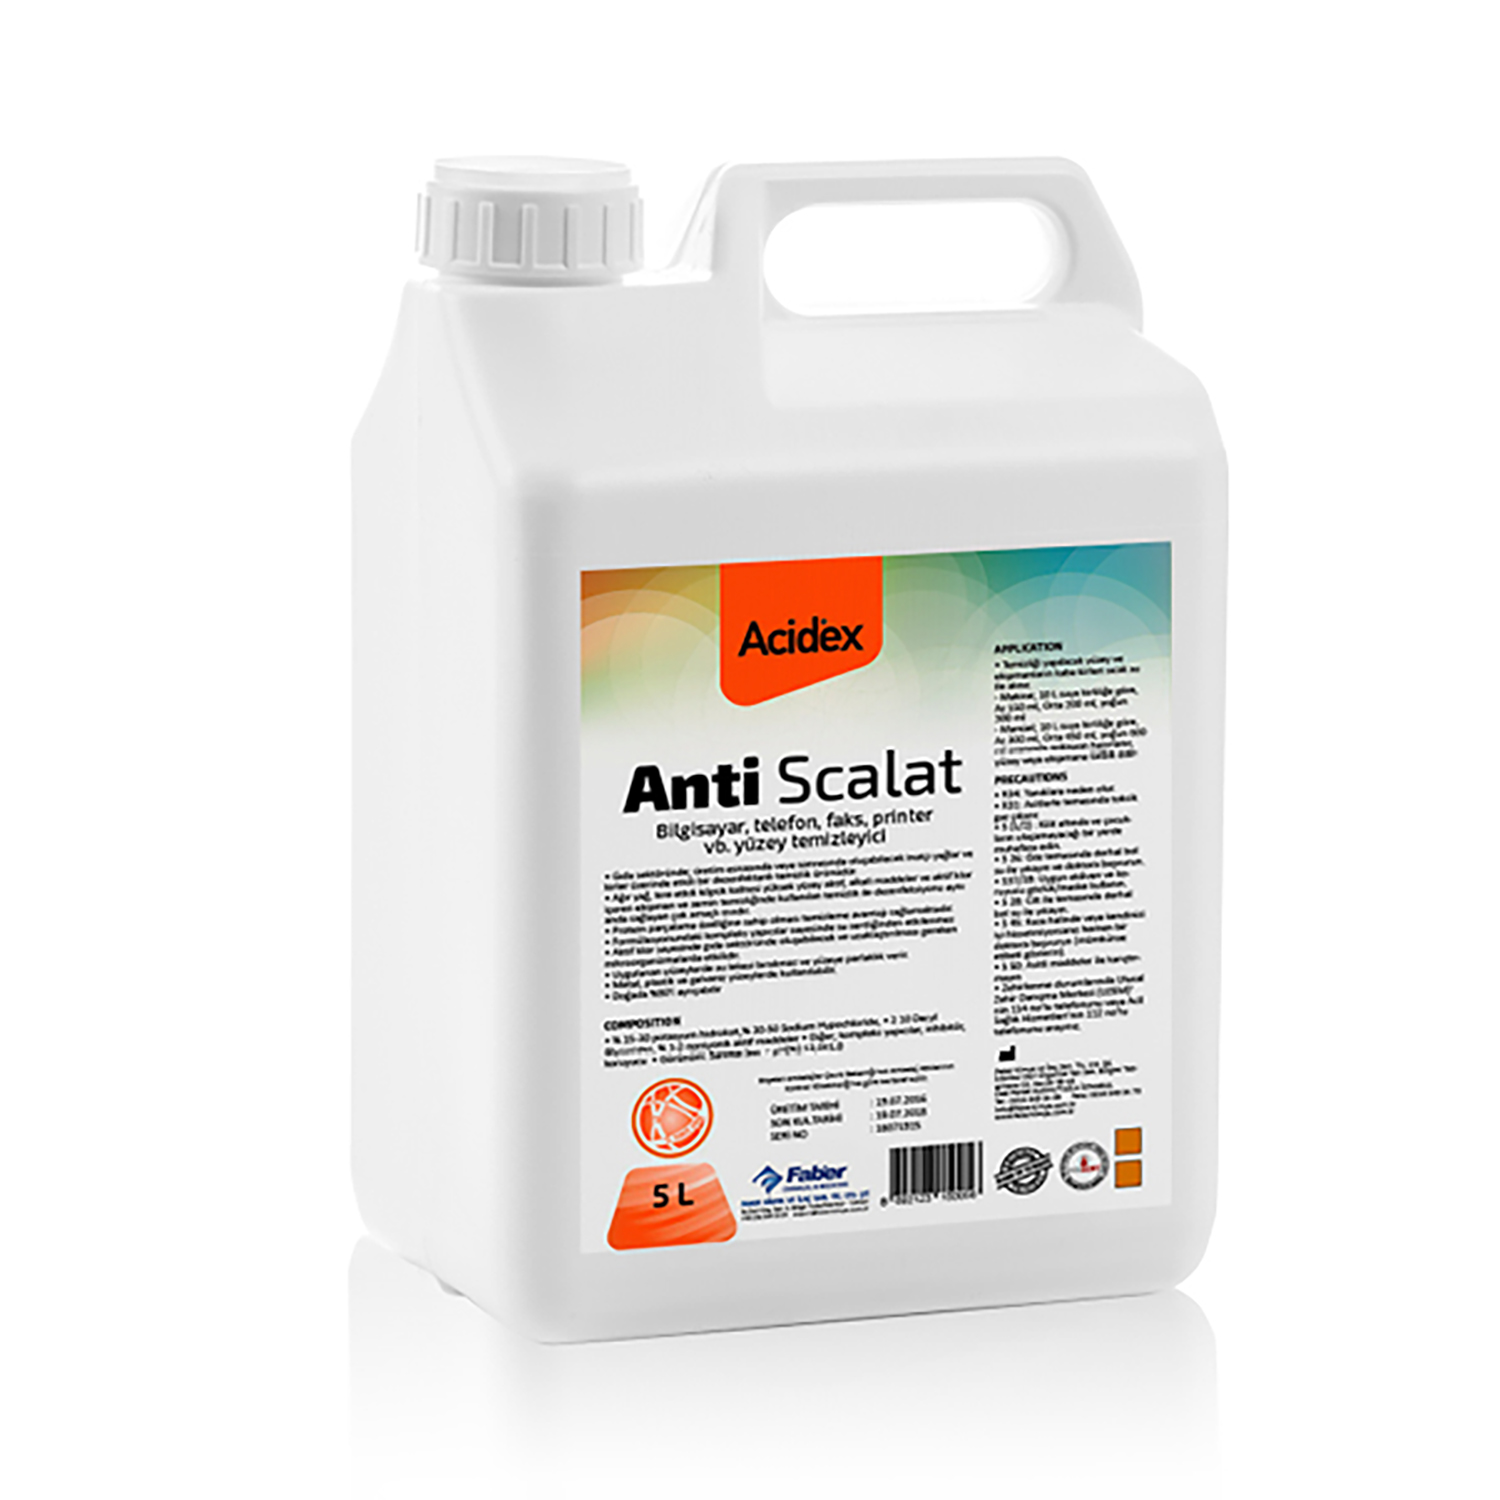 Acidex Anti Scalat